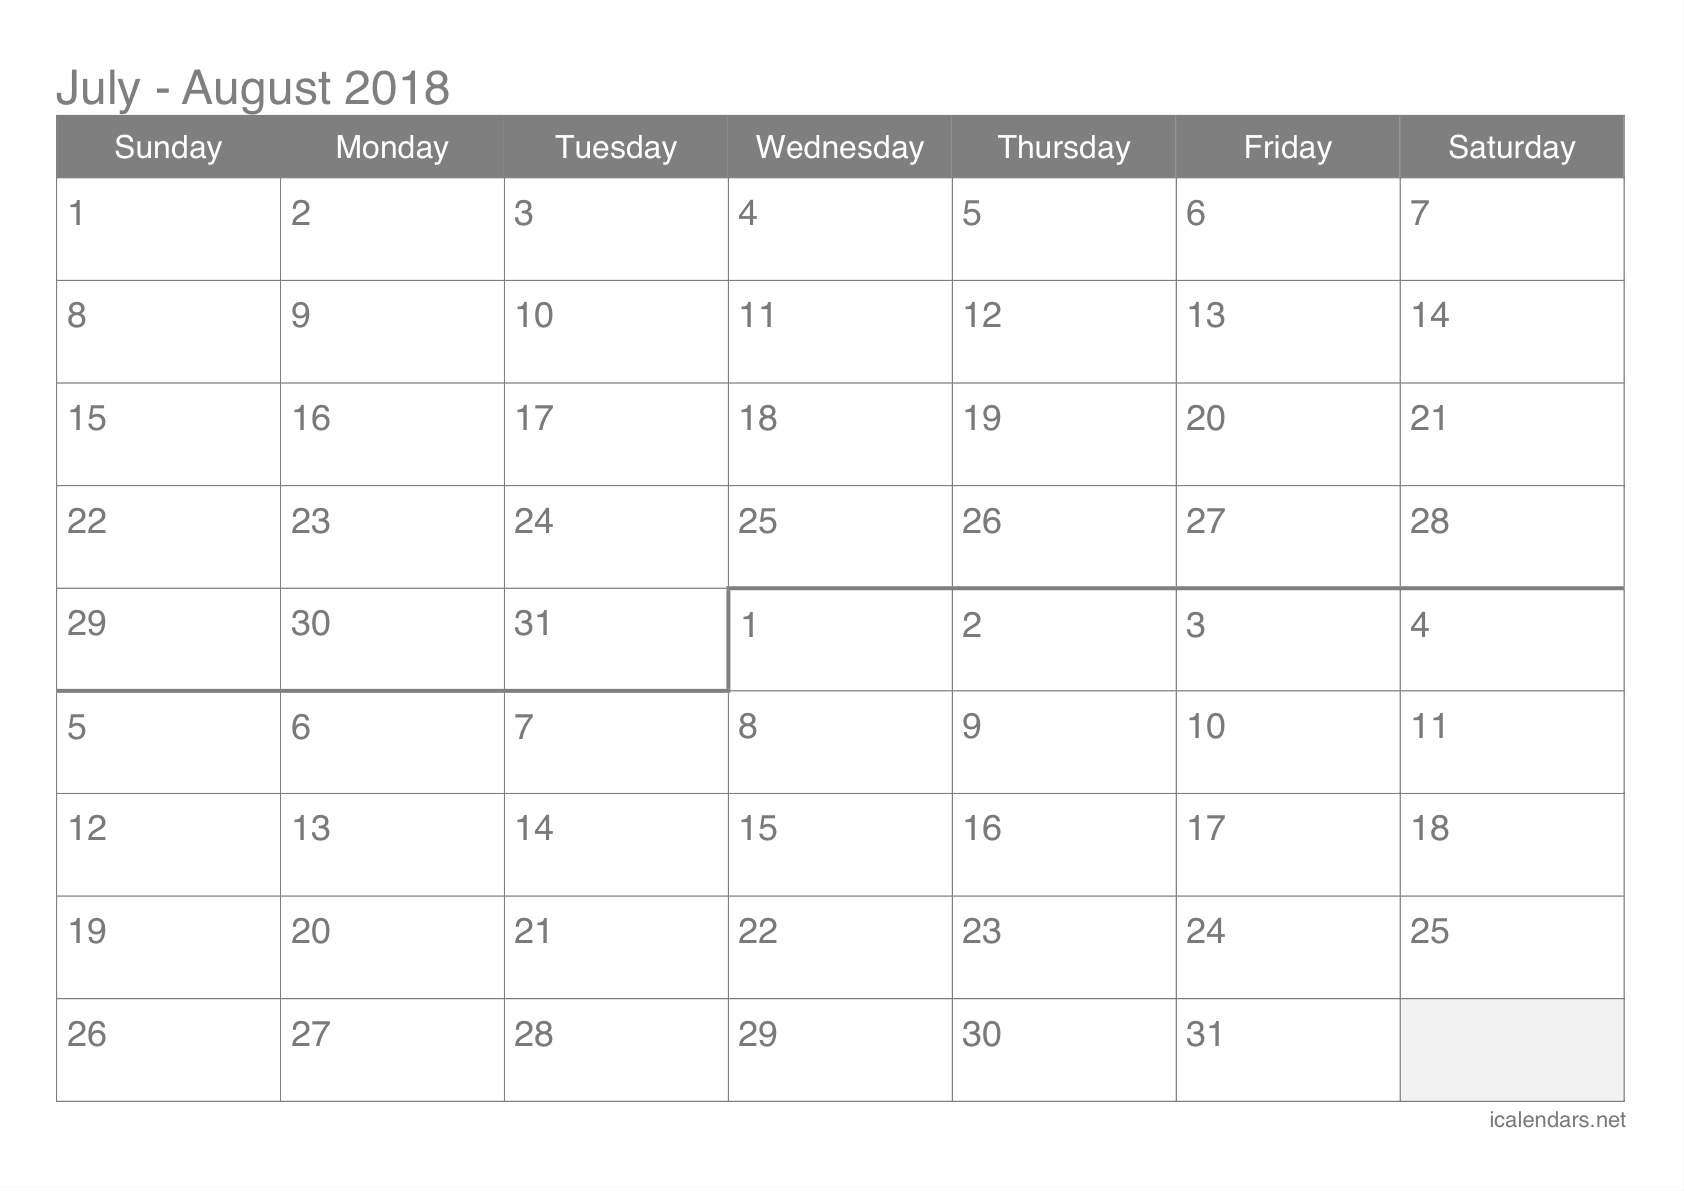 July And August 2018 Printable Calendar - Icalendars with Printable July Through August On One Page Calendars